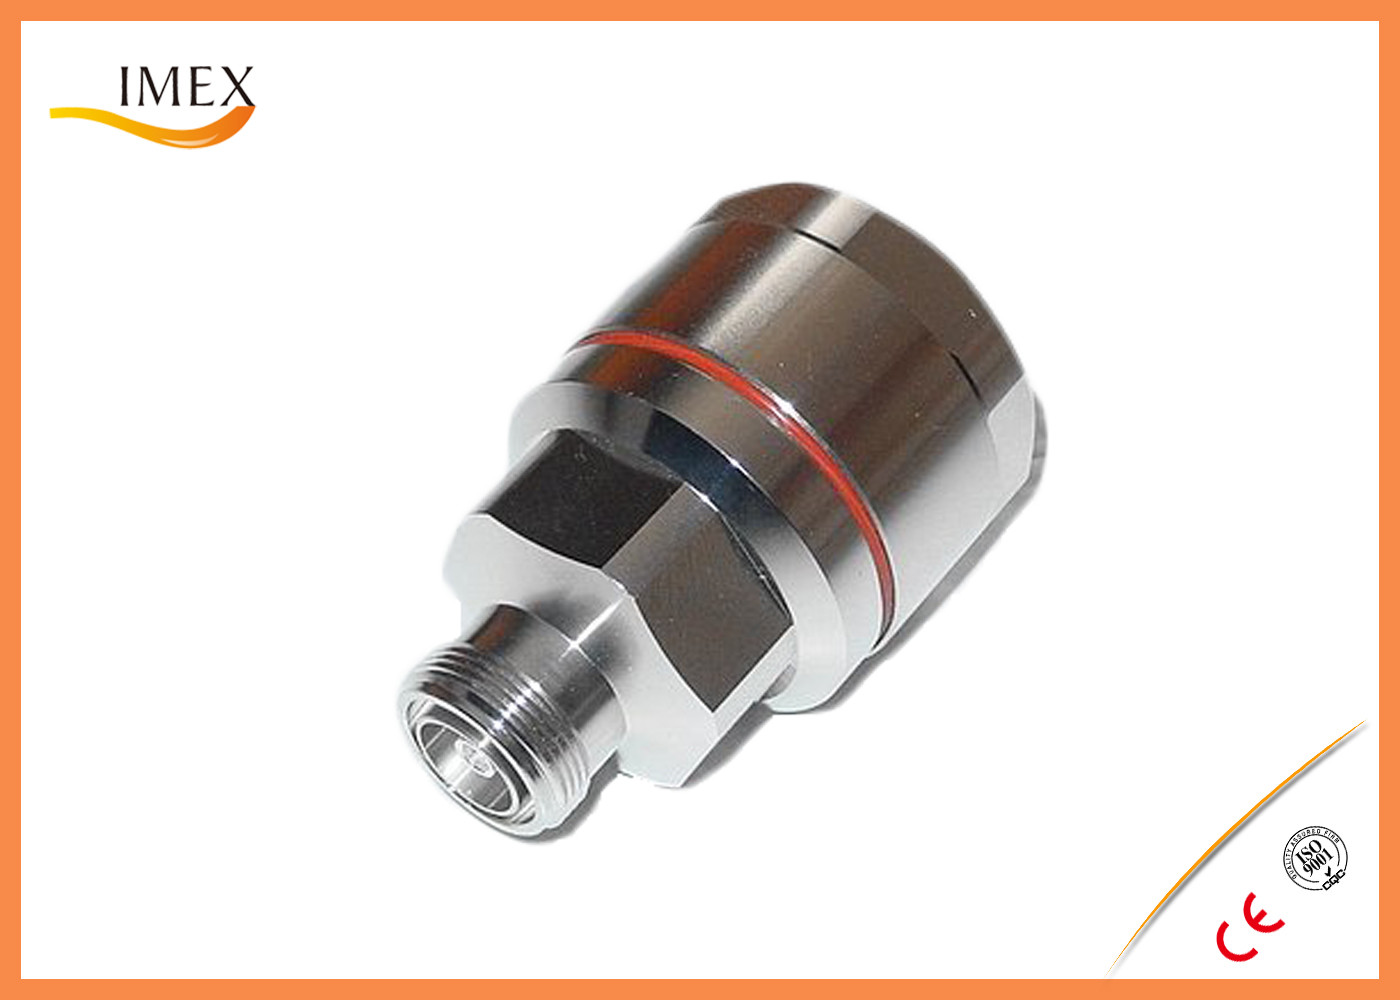 """7/16 DIN Female connector for 1-5/8"""" RF coaxial foam feeder cable SMA jack plug connector for RG59 RG213 RG316 cable"""